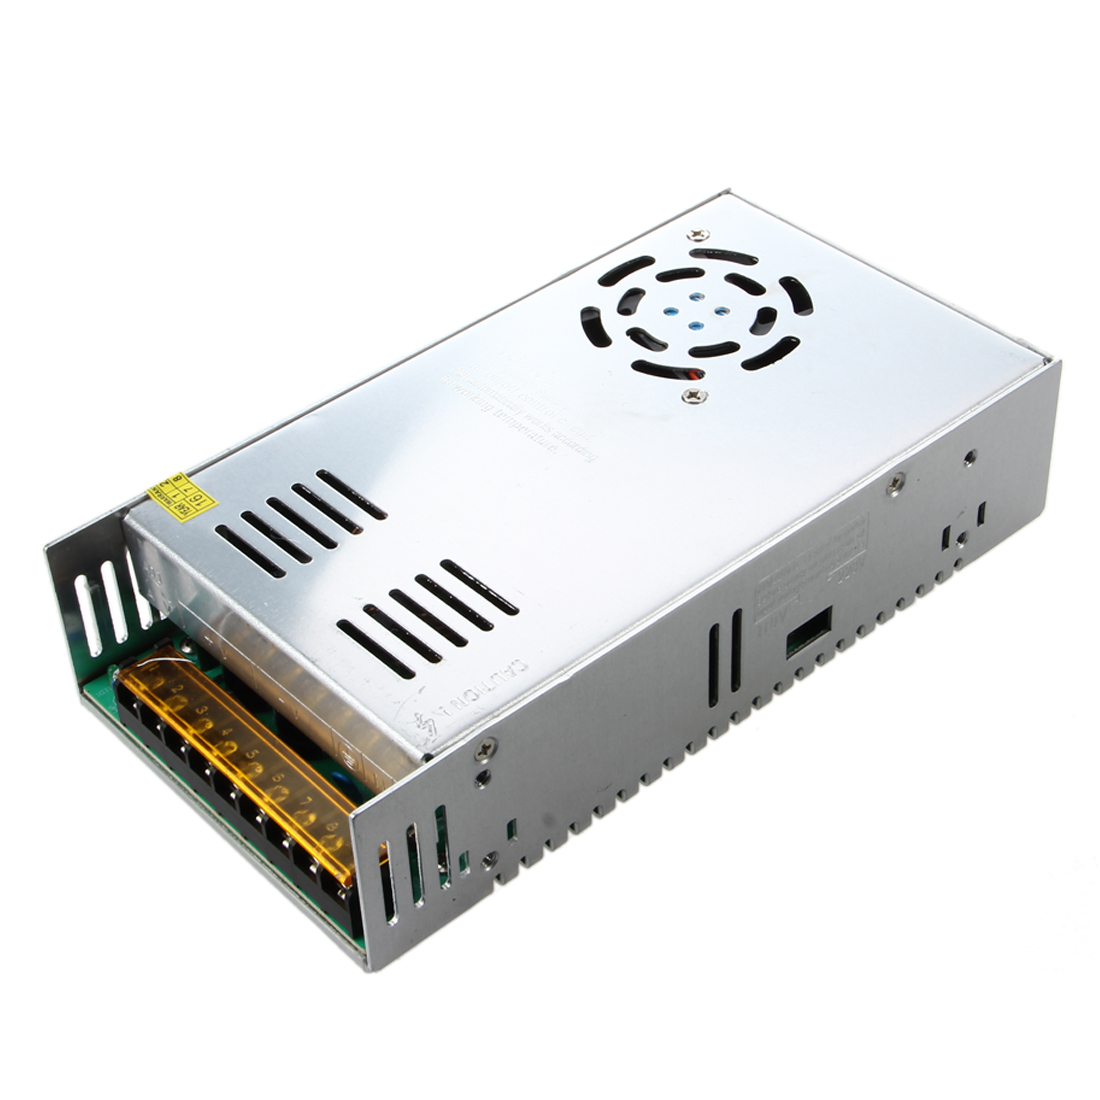 DSHA New Hot 400W Switch Power Supply Driver for LED Strip Light DC 12V 33A power supply 24v 800w dc power adapter ac110 220v non waterproof led driver 33a ups for strip lamps wholesale 1pcs